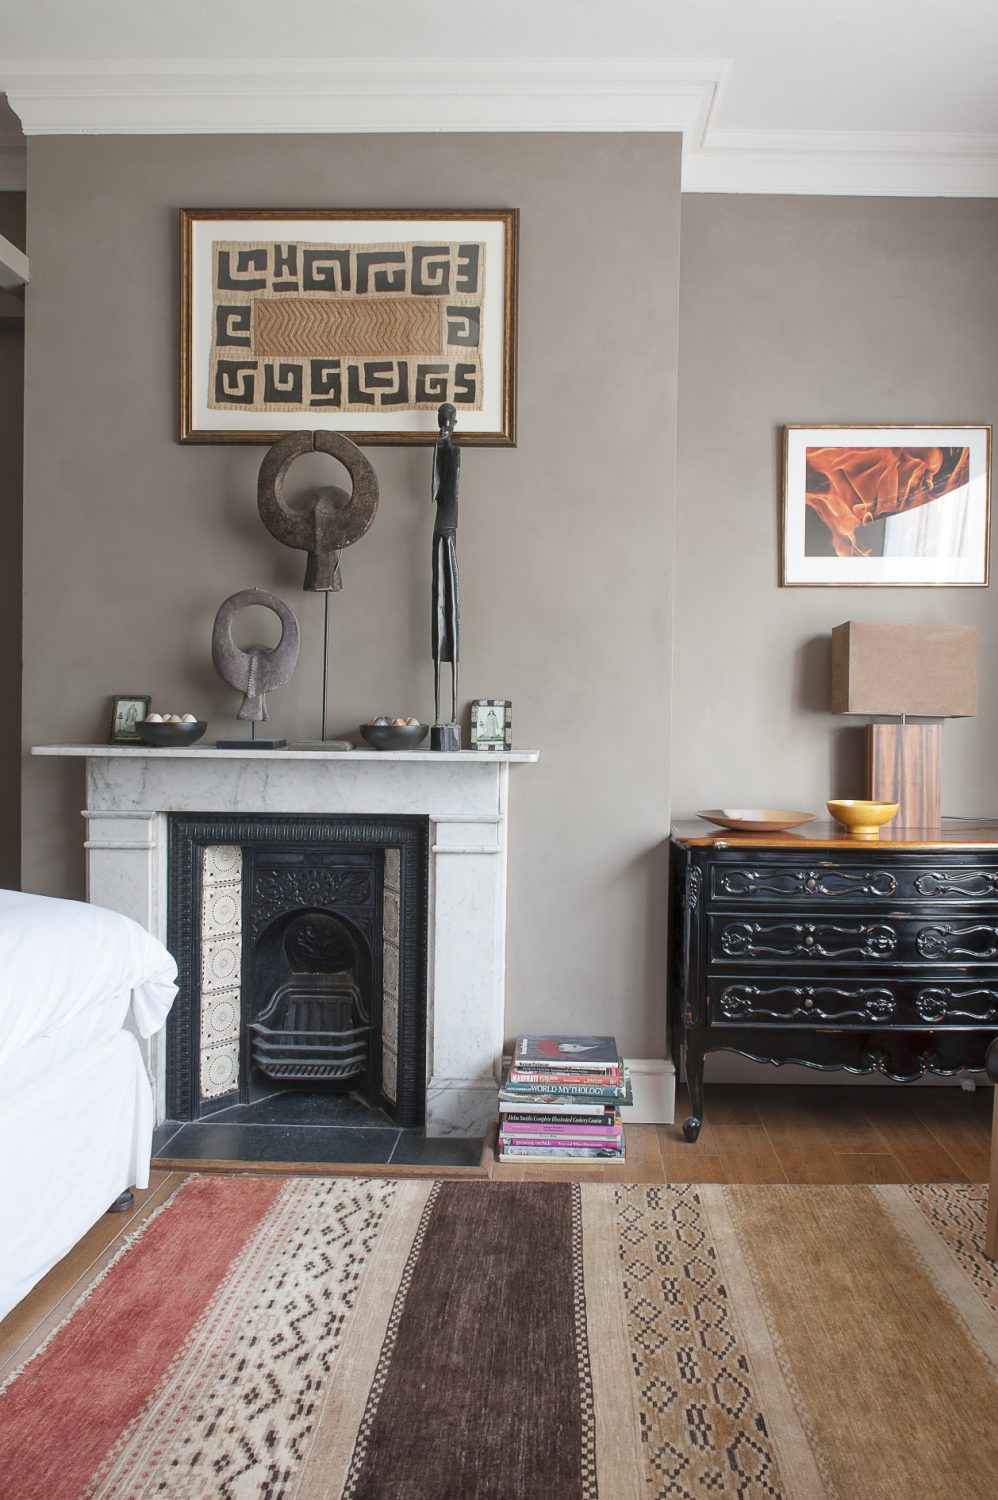 In the Saadi bedroom African buffalo masks and a tribal figure stand tall above the fireplace. The colours are earthier, but very contemporary and the fresh white bedlinen and pale marble fireplace make a crisp contrast